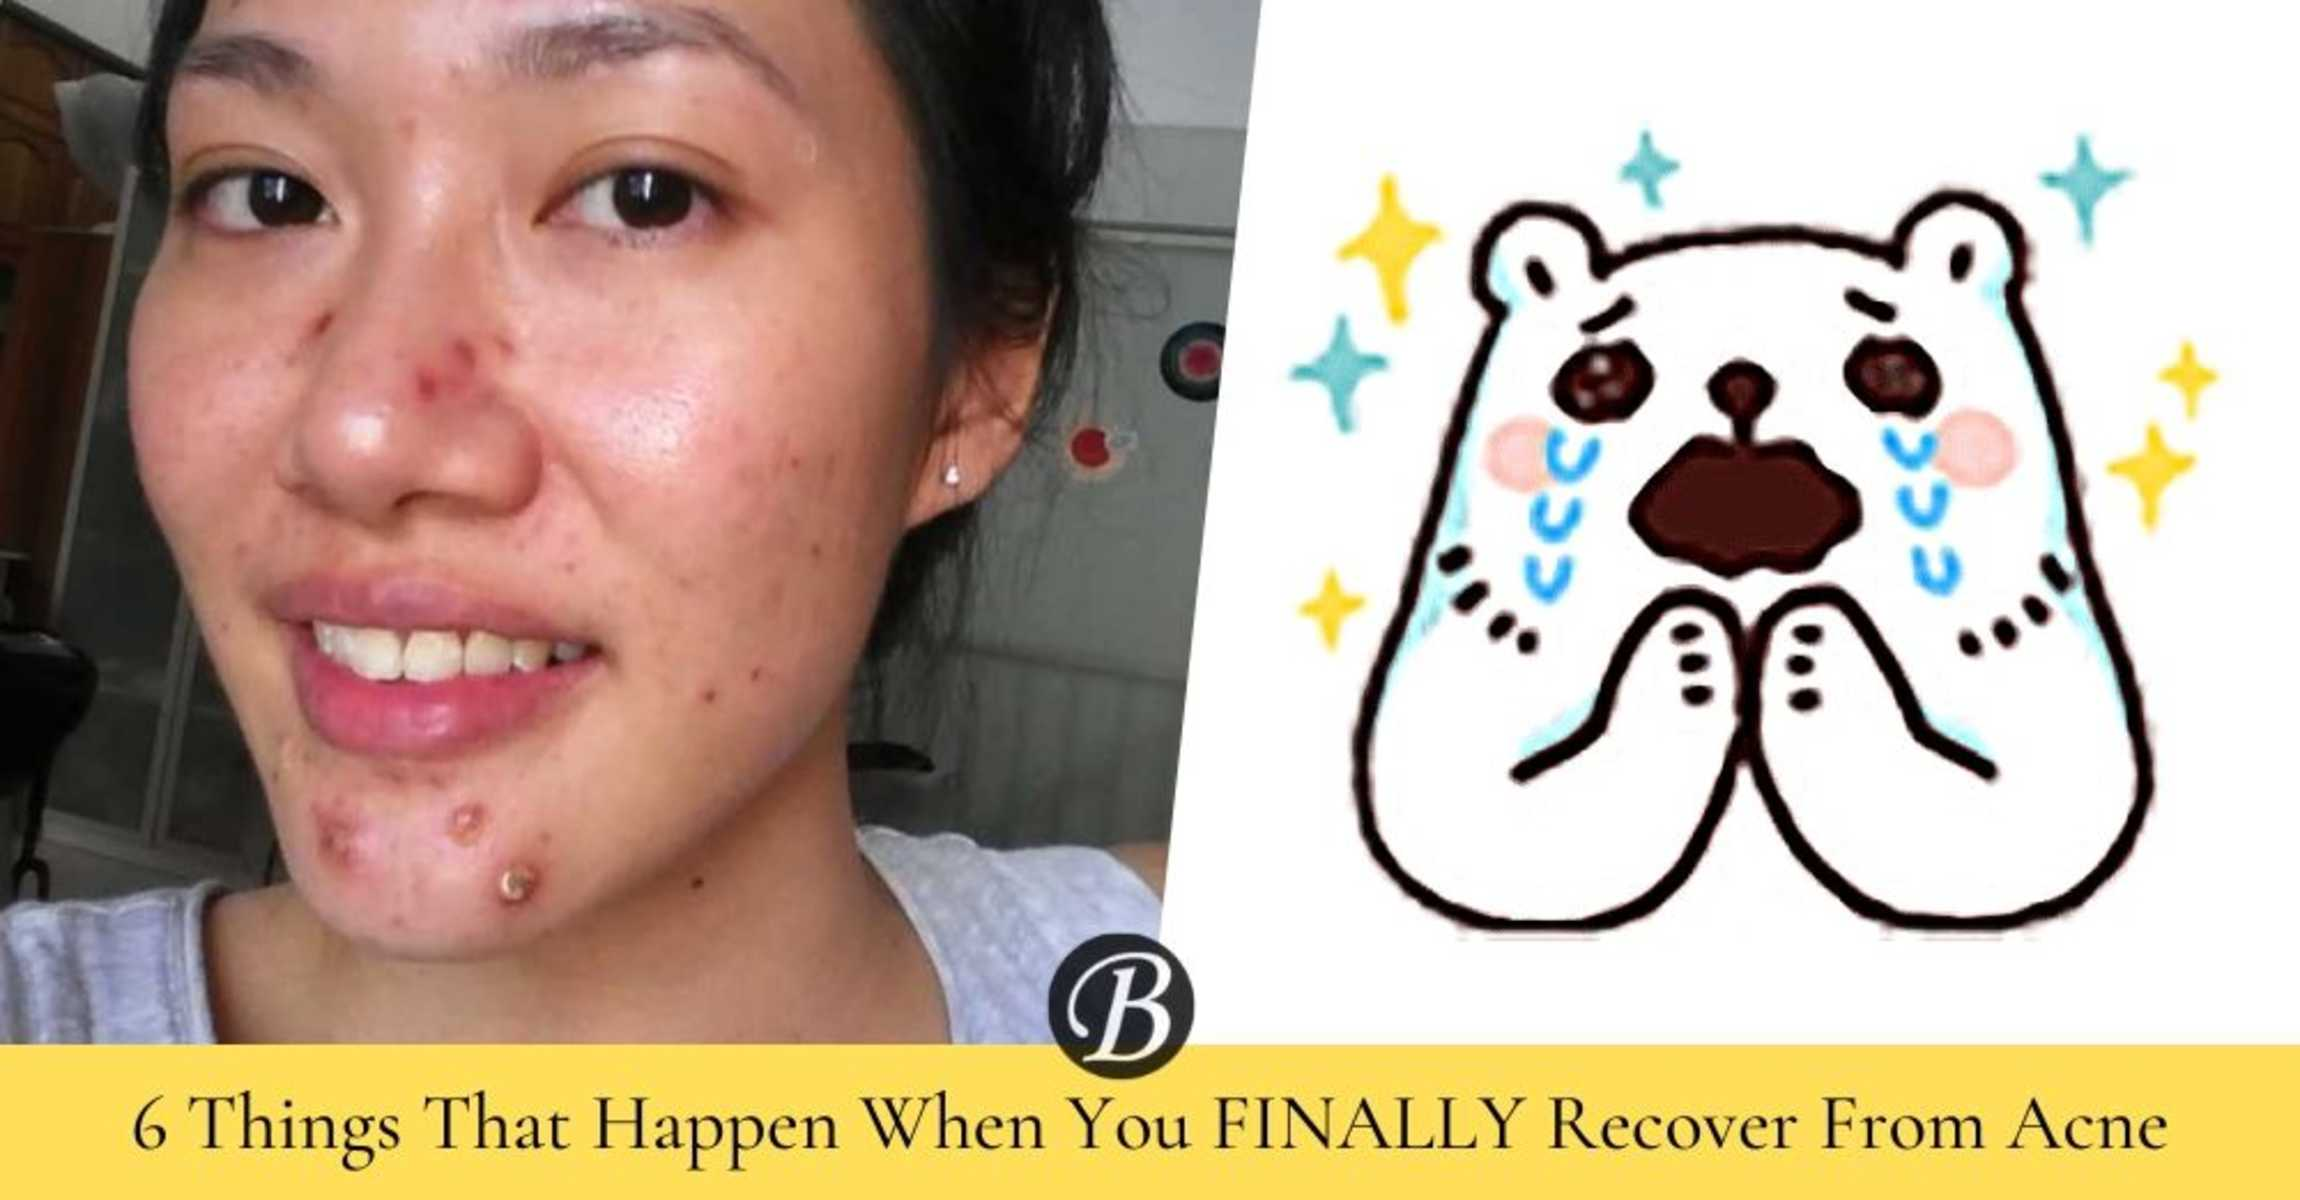 6 Things That Happen When You Recover From Acne